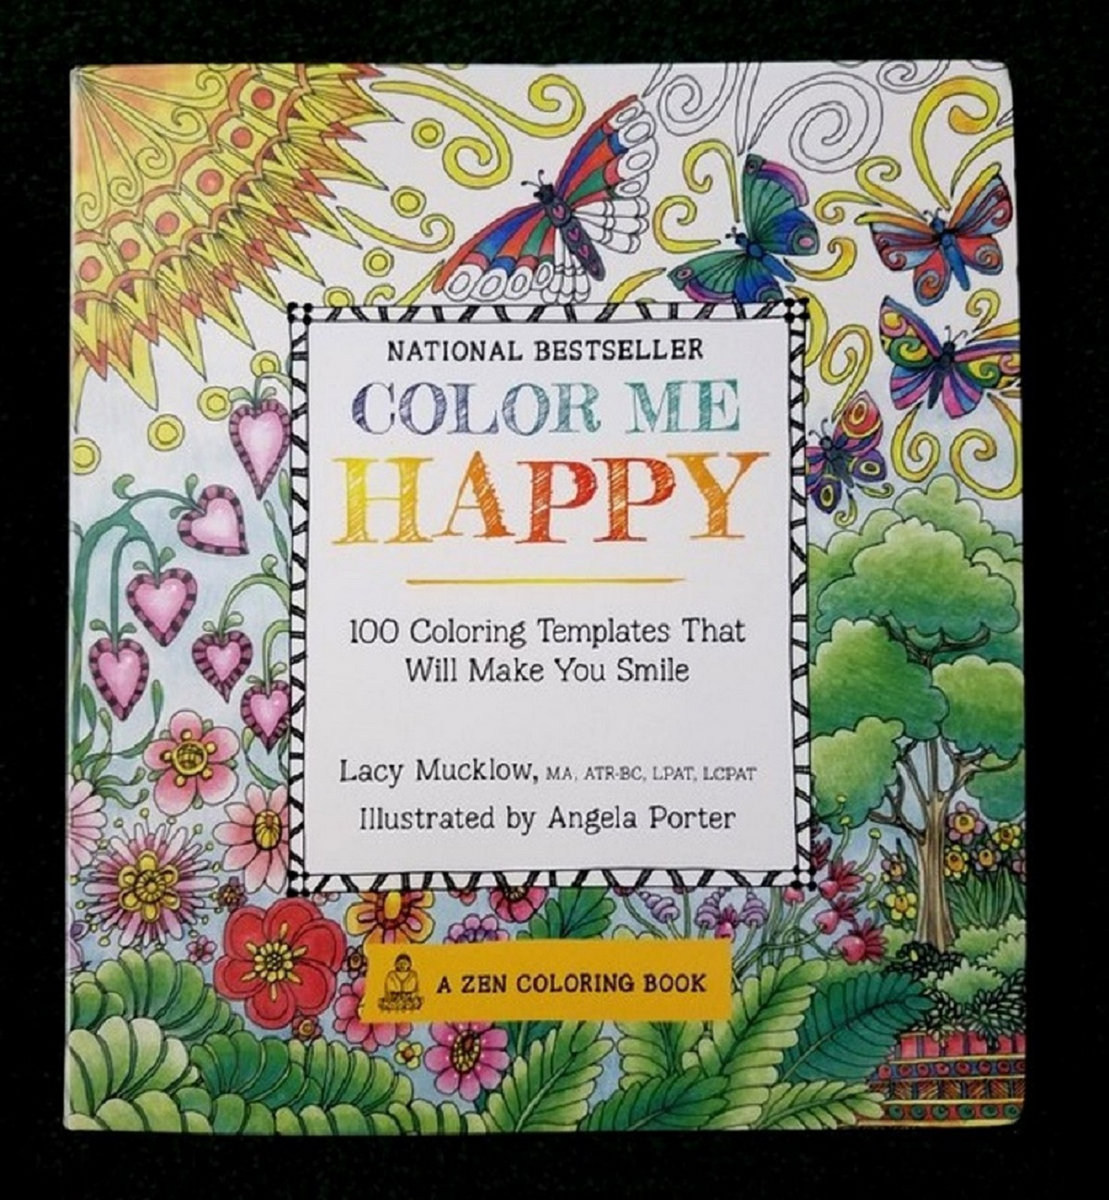 Add More To Your Relaxation By Bundling Lavender Dreams Album With An Adult Coloring Book Designed Lift Mood